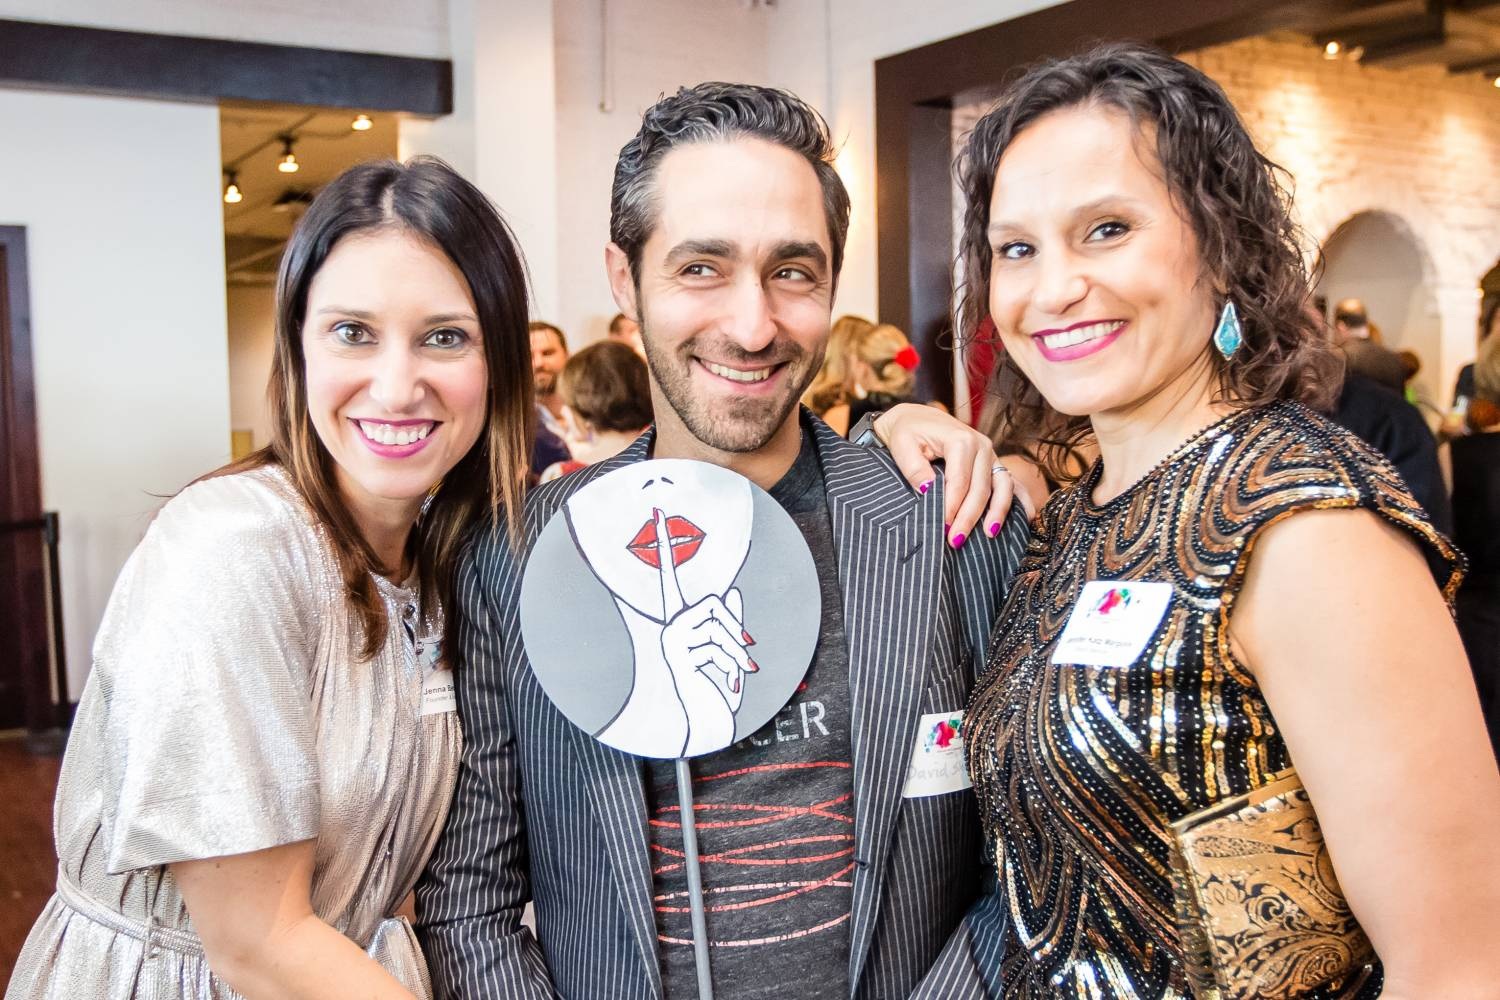 Jenna Benn Shersher, David Shersher and Jennifer Katz Margolis at Brushes with Cancer Austin